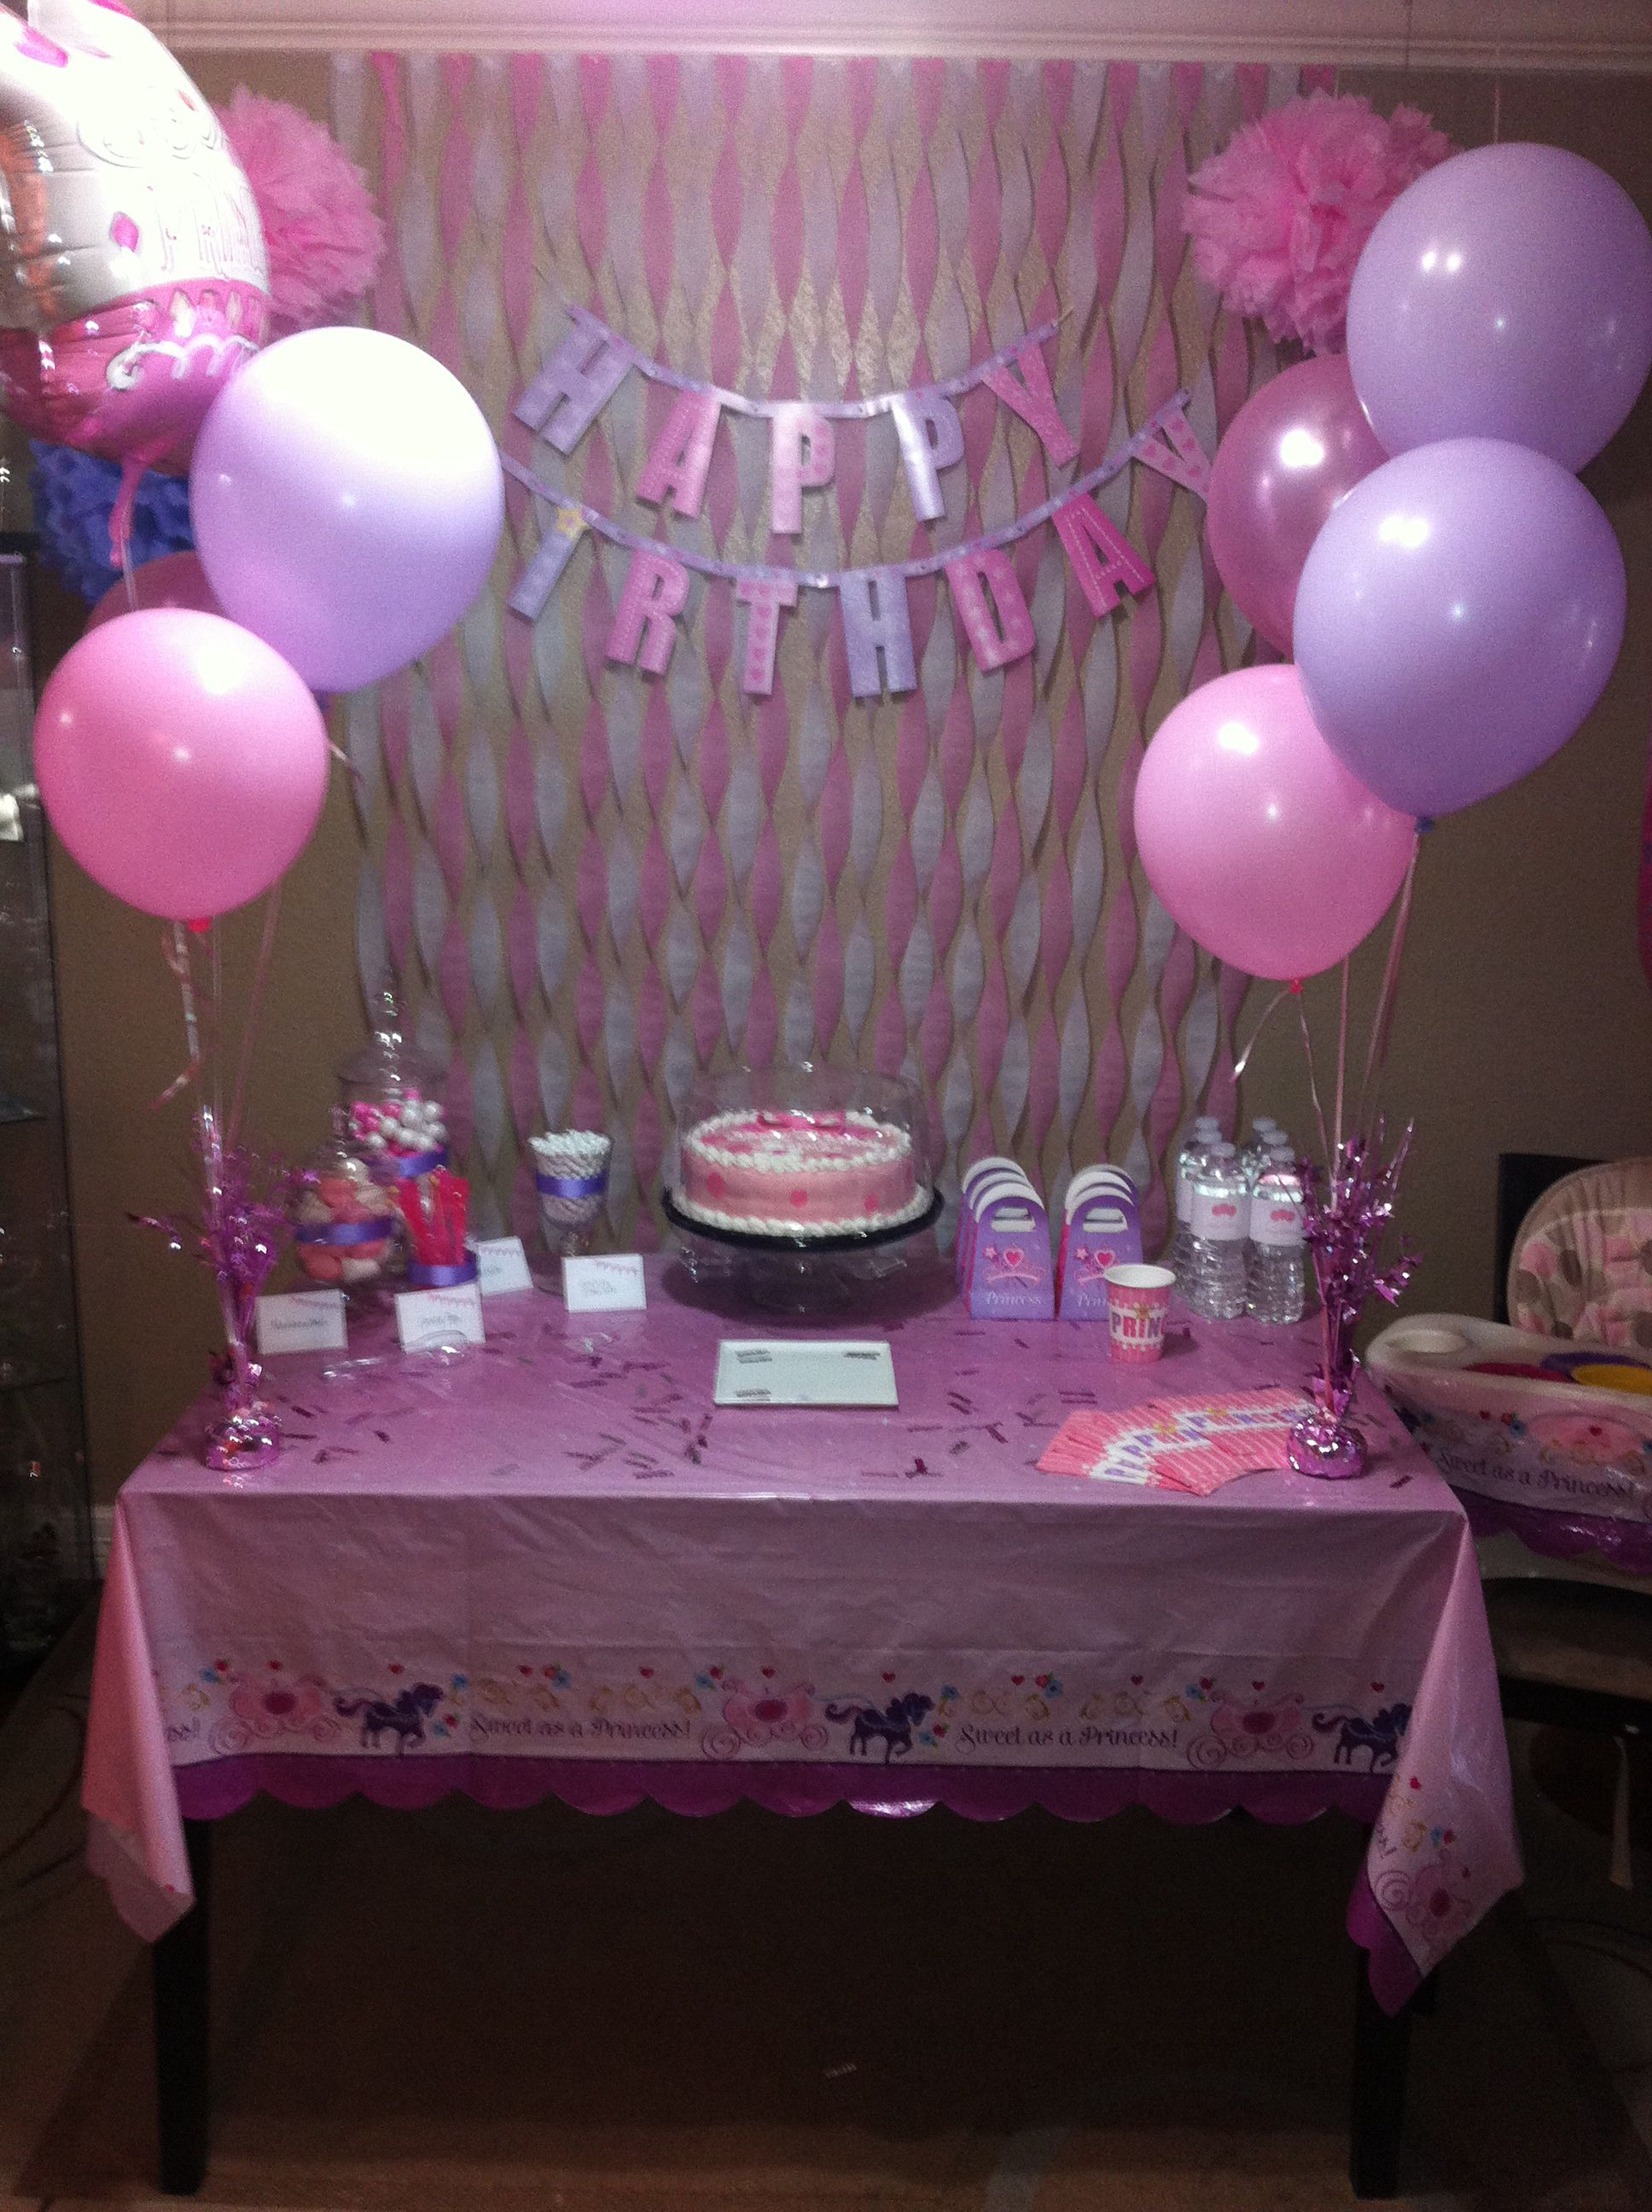 1st Birthday Party Ideas On A Budget.First Birthday Princess Party Pink And Lavender Decor On